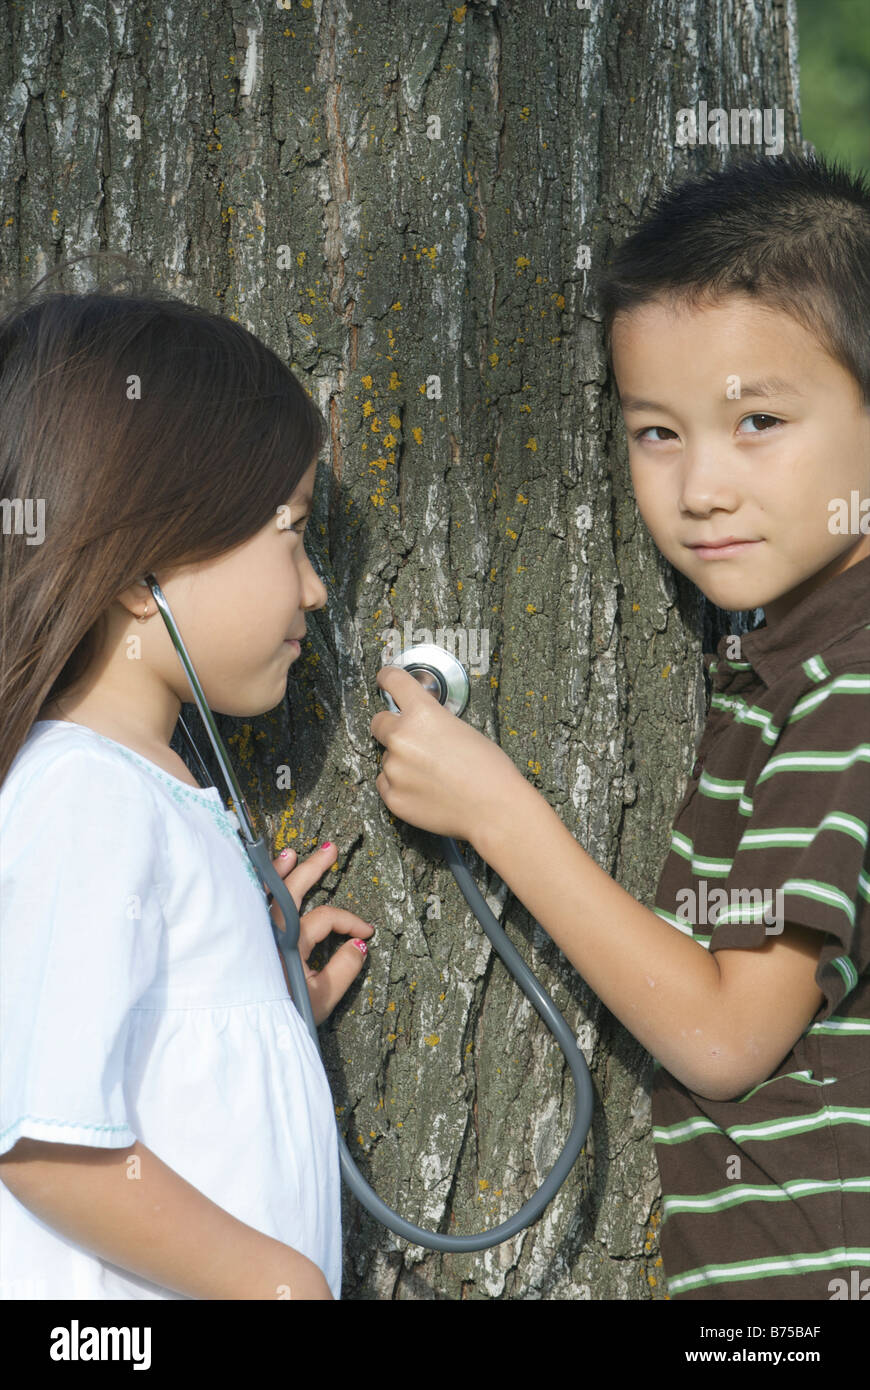 Five year old sister and seven year old brother with stethescope on tree, Winnipeg, Canada - Stock Image